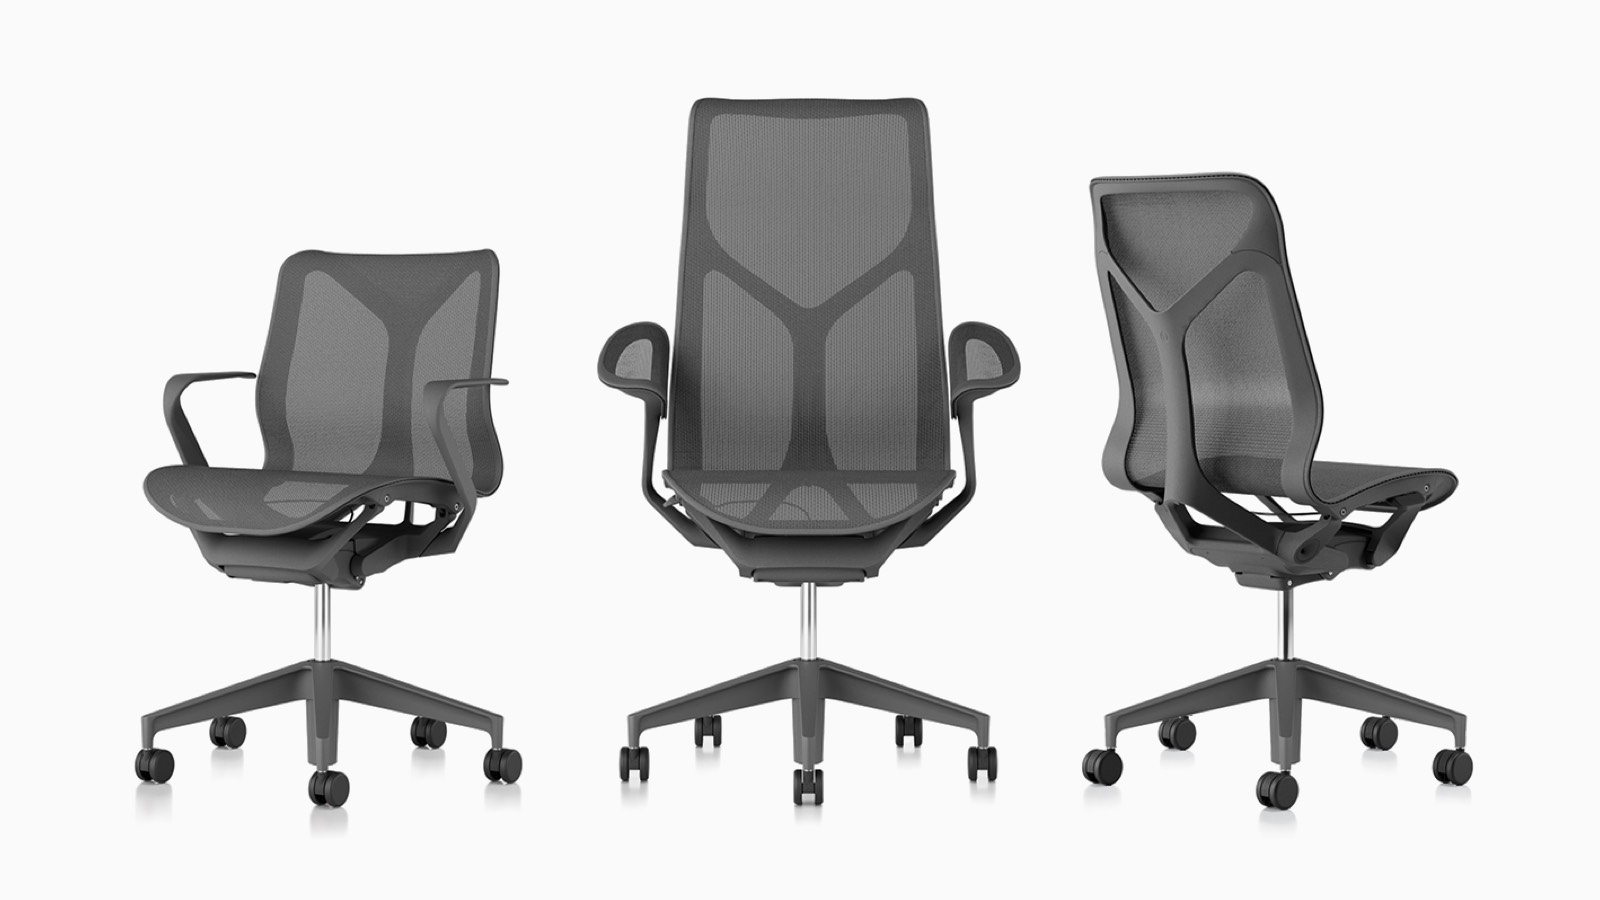 Low-back, high-back, and mid-back Cosm ergonomic desk chairs with suspension materials, bases, and frames in Carbon grey.